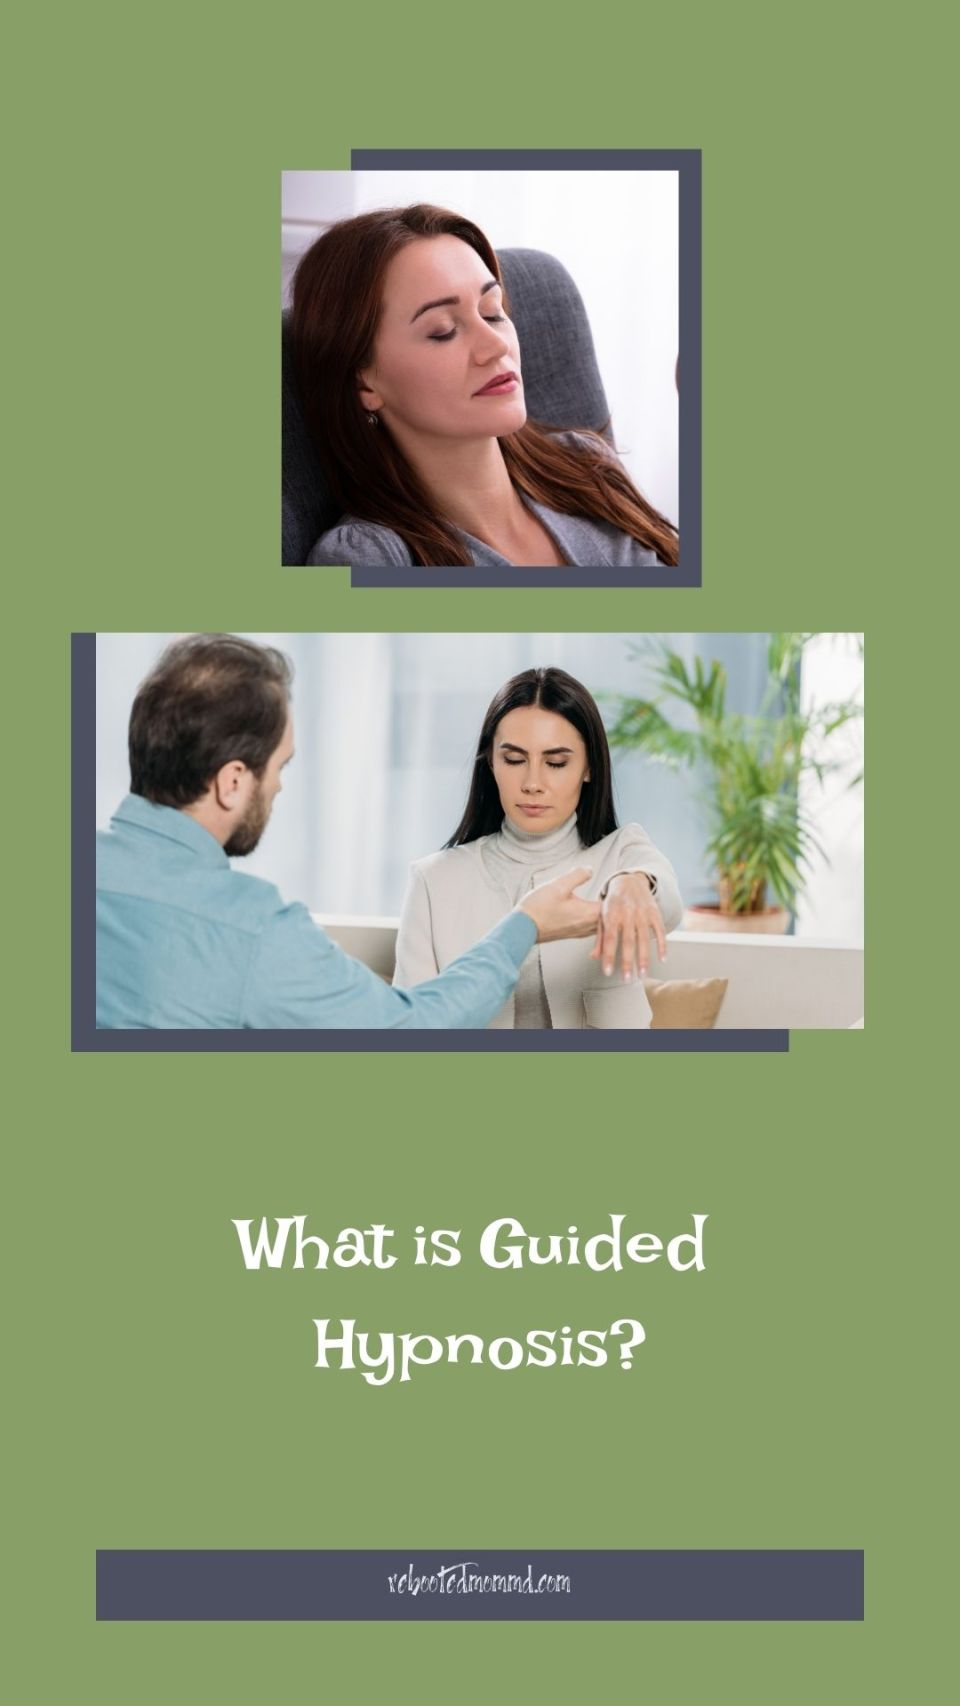 What is Guided Hypnosis?